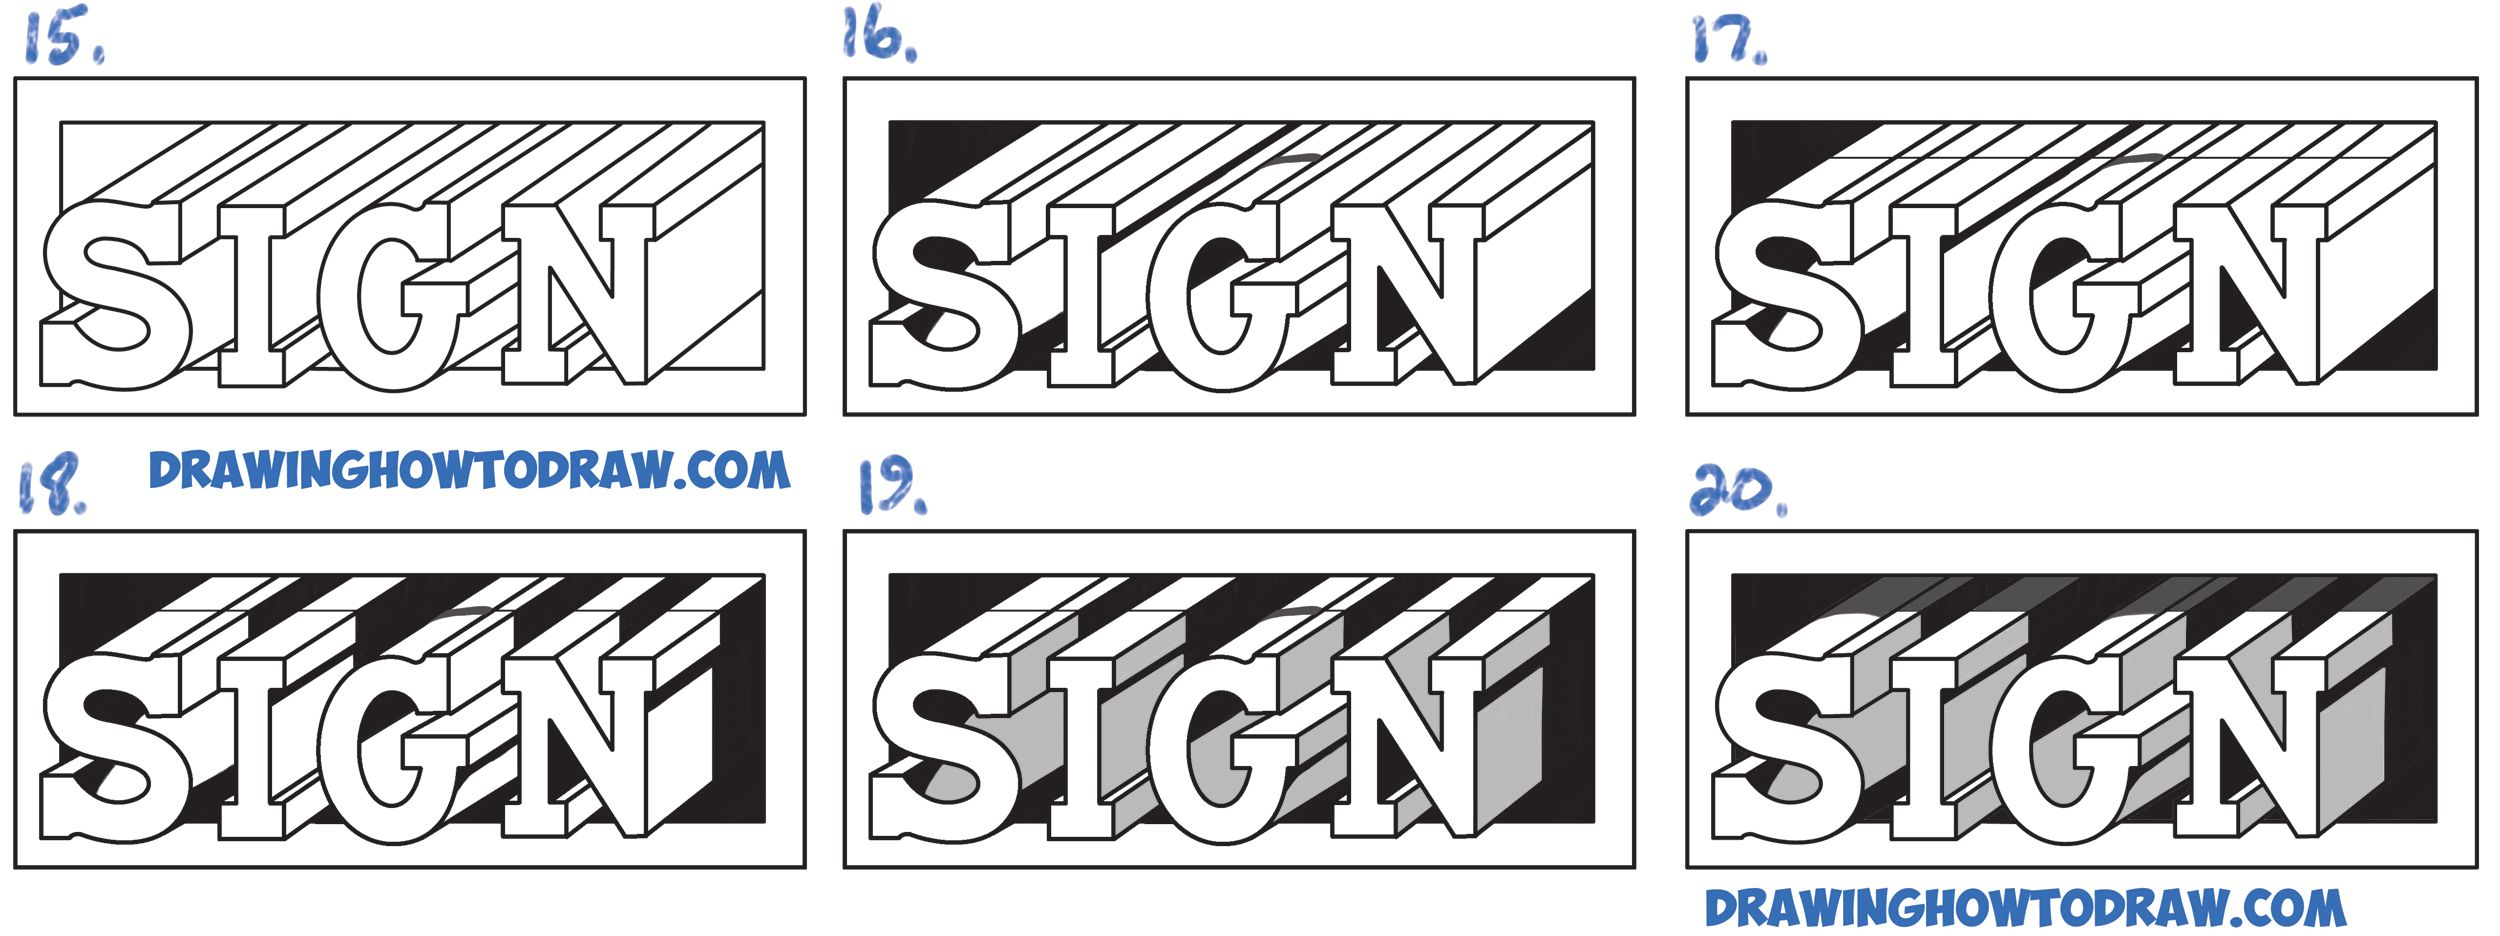 how to draw cool letters az step by step